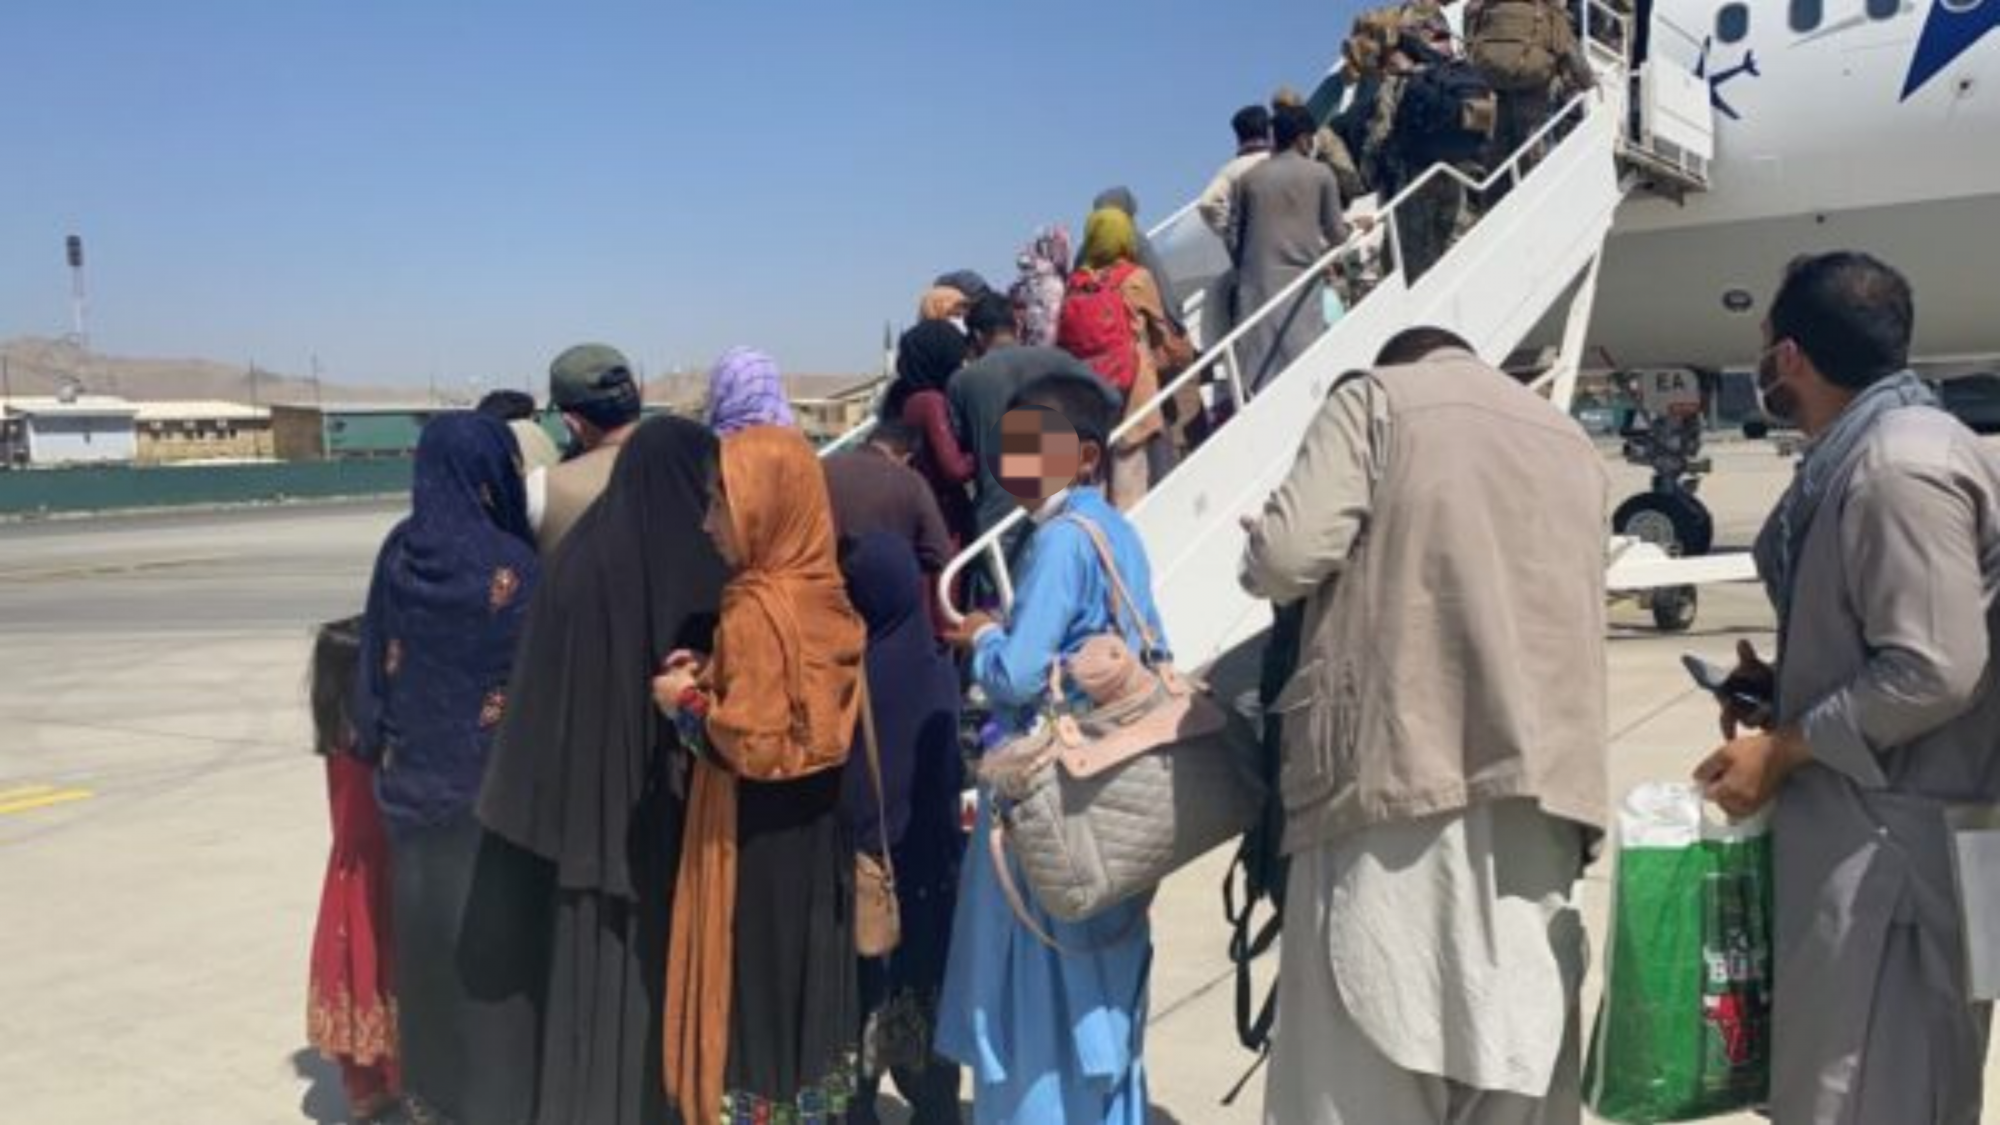 IBP students evacuate thousands from Afghanistan